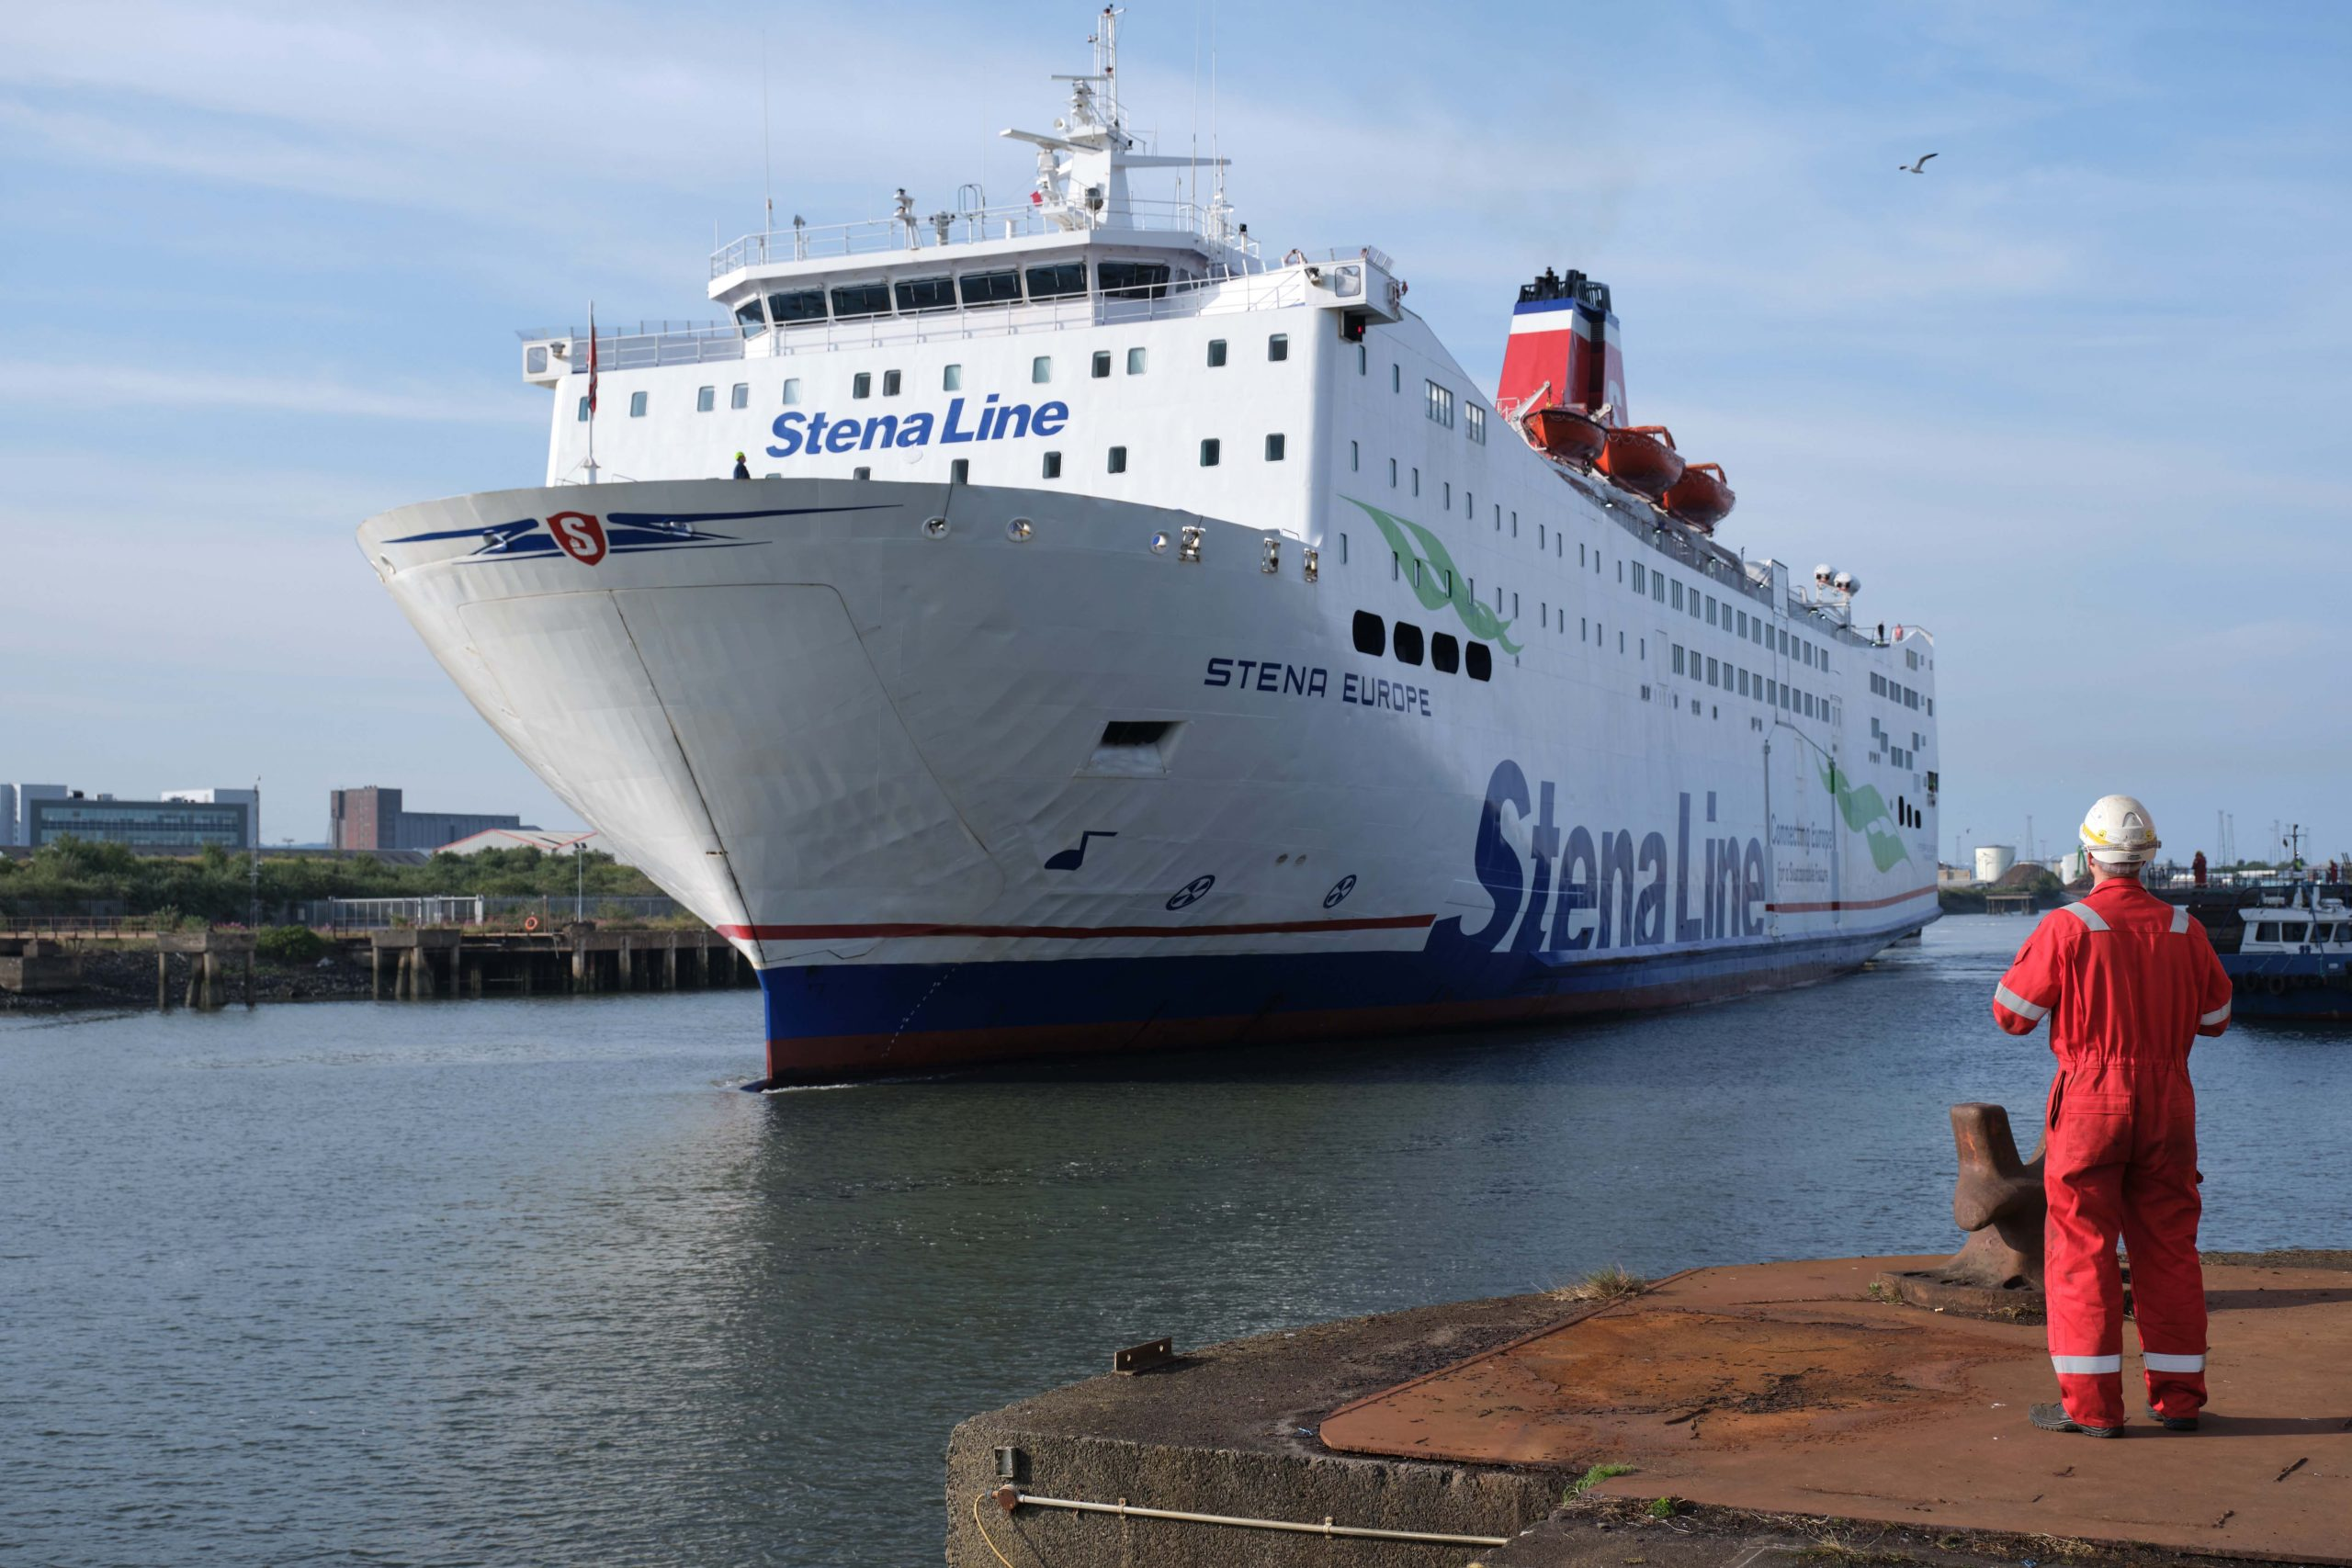 Stena Line supports local industry with multi-ship docking programme - 2